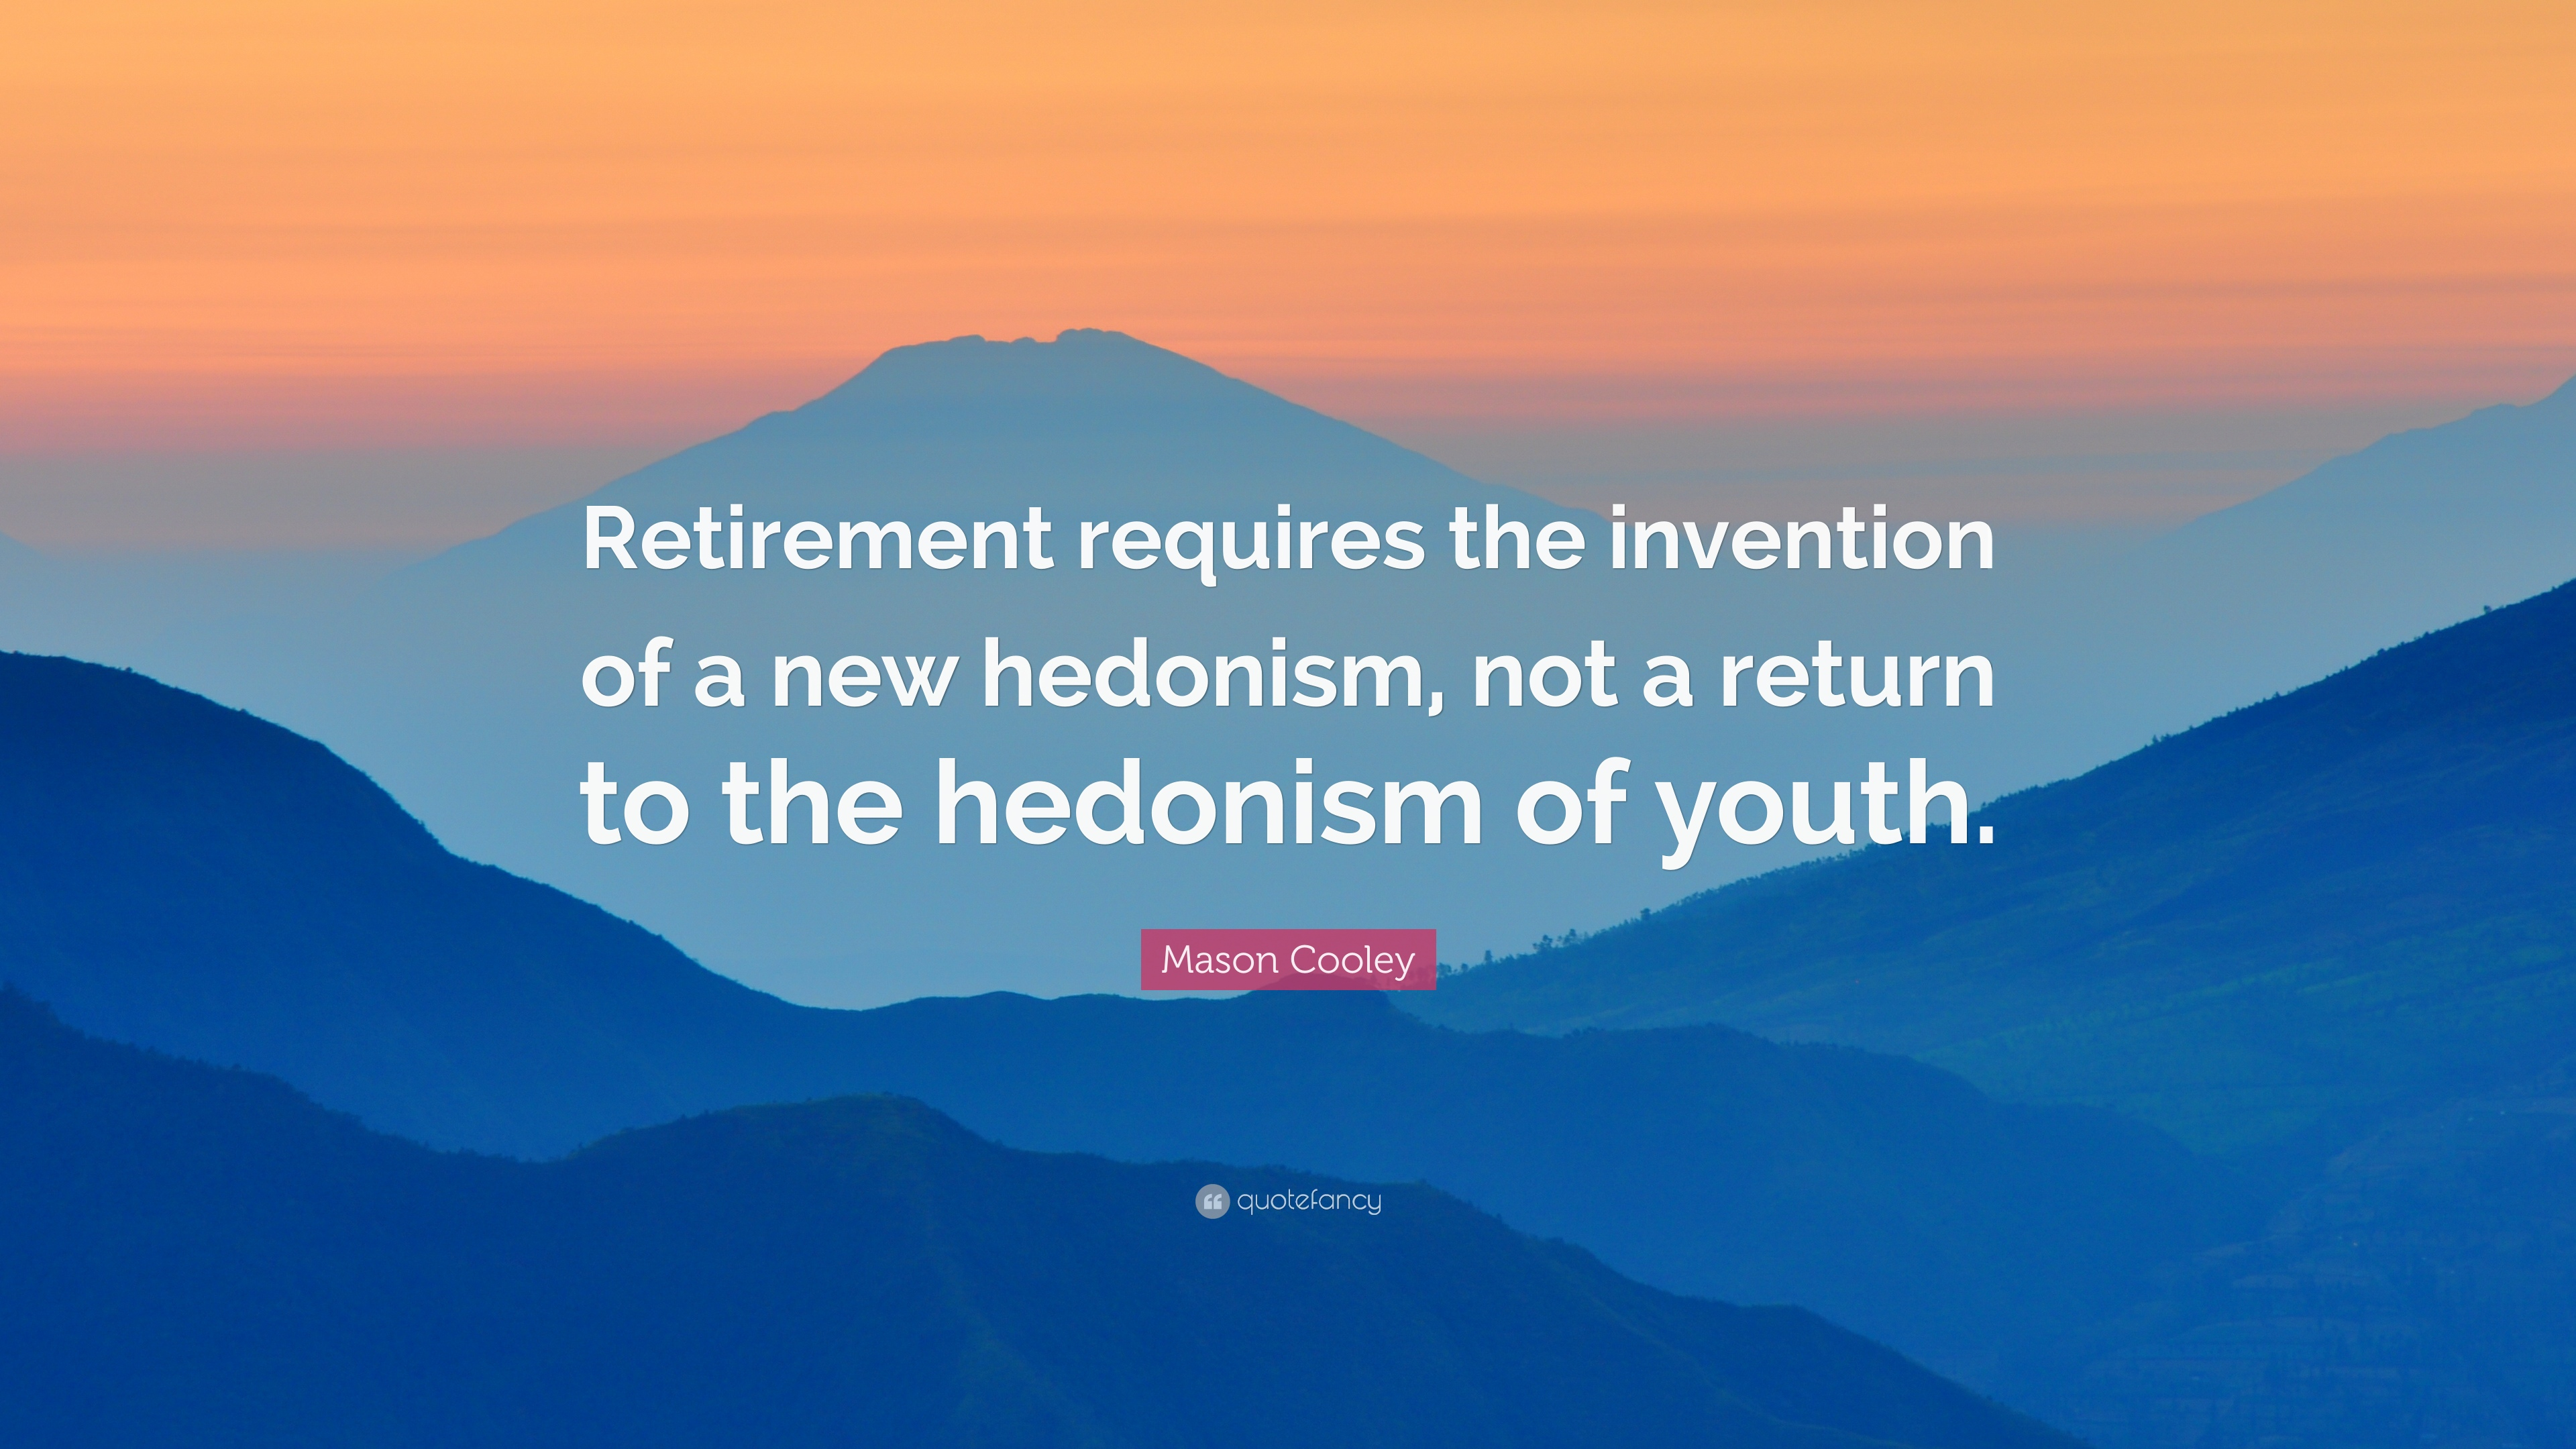 the new hedonism